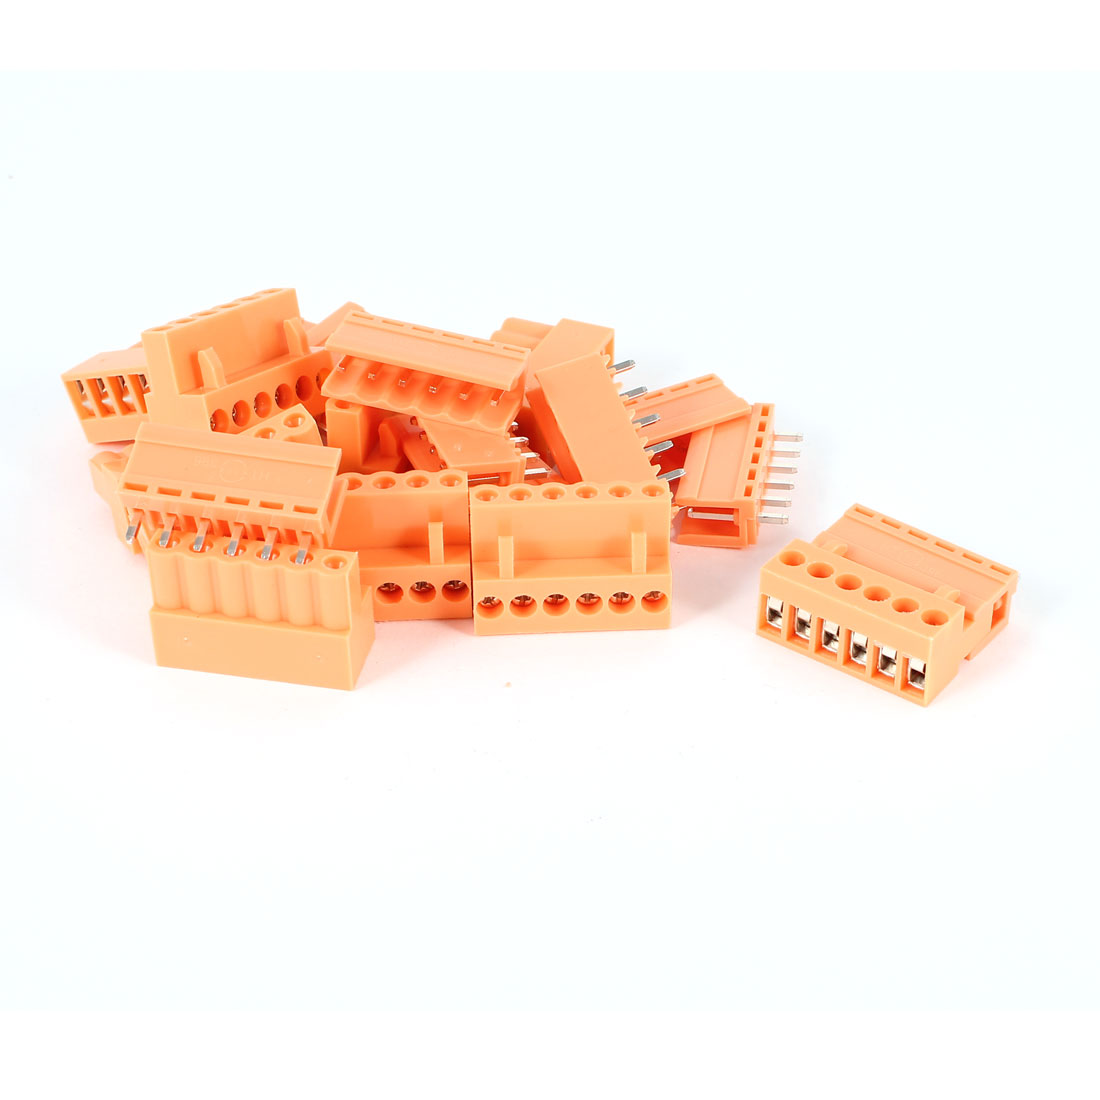 10 Pcs Orange HT396K 3.96mm 6Position 6Pin Pluggable Screw Terminal Block Connector 300V 10A